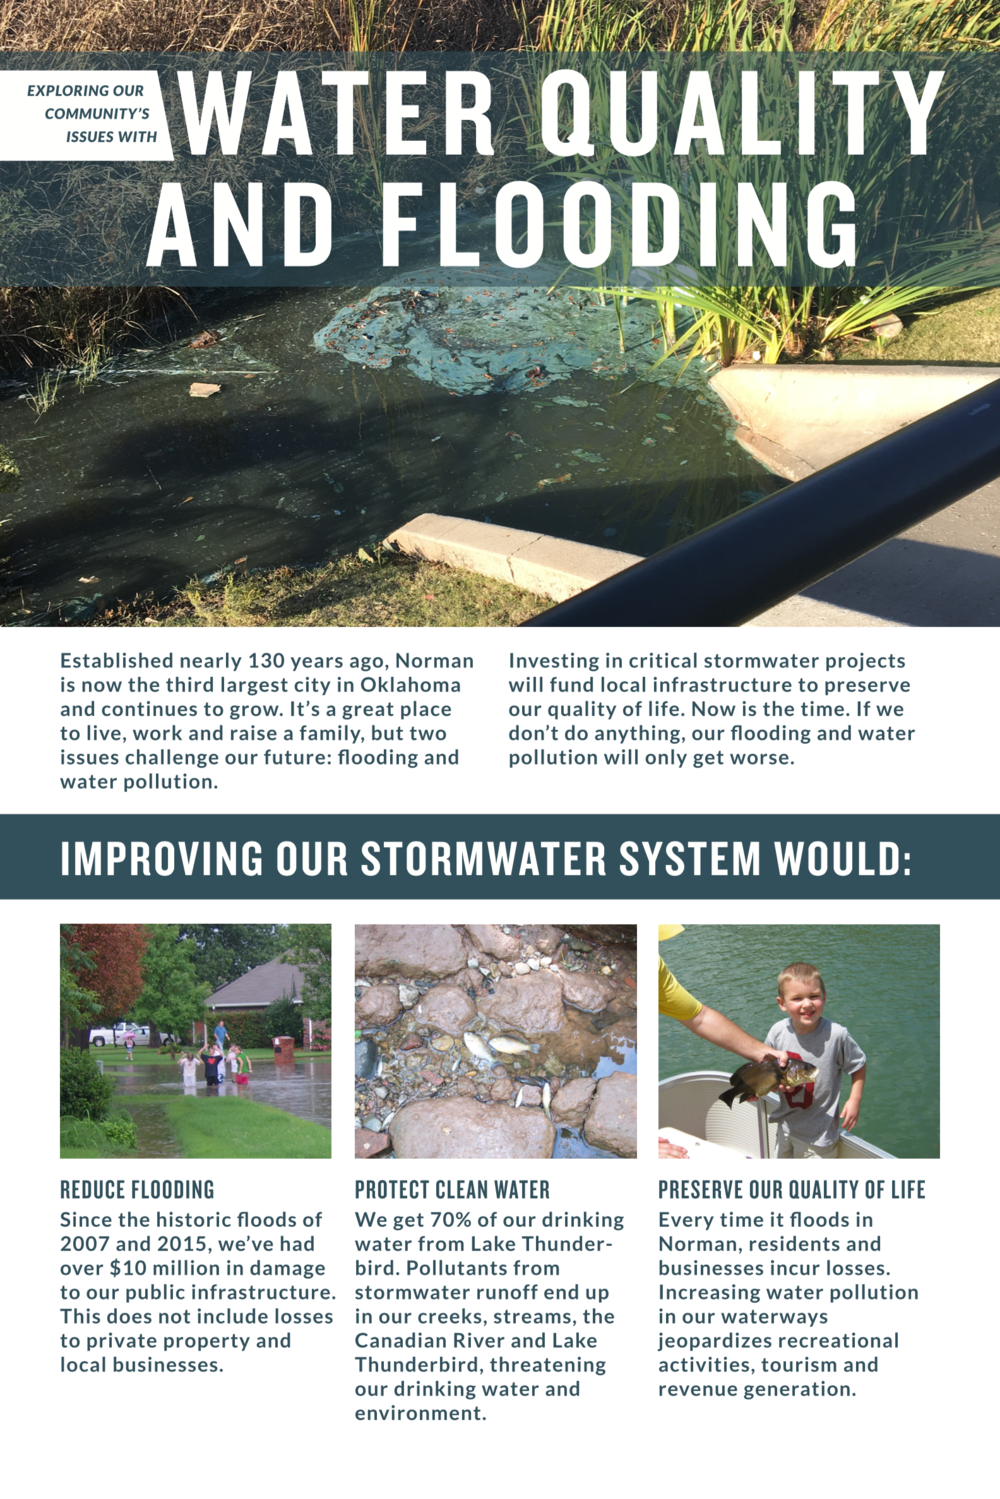 Water Quality and Flooding - Exploring Our Community's Issues